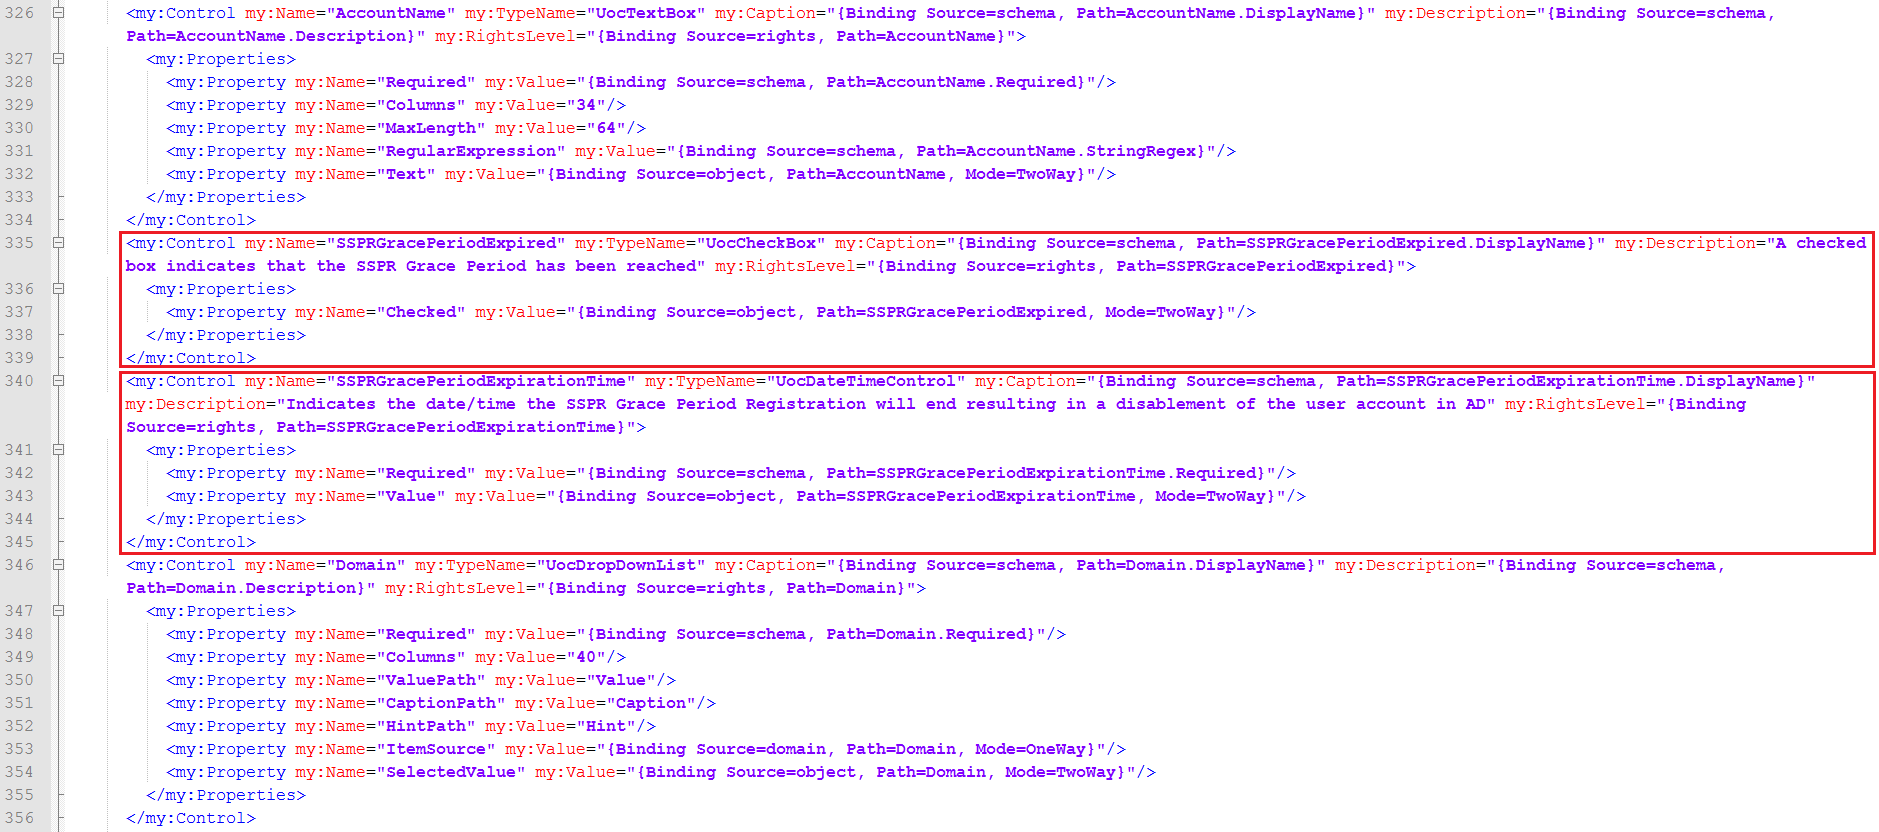 SSPR Forcing Function Screenshot: RCDC User Edit XML Code